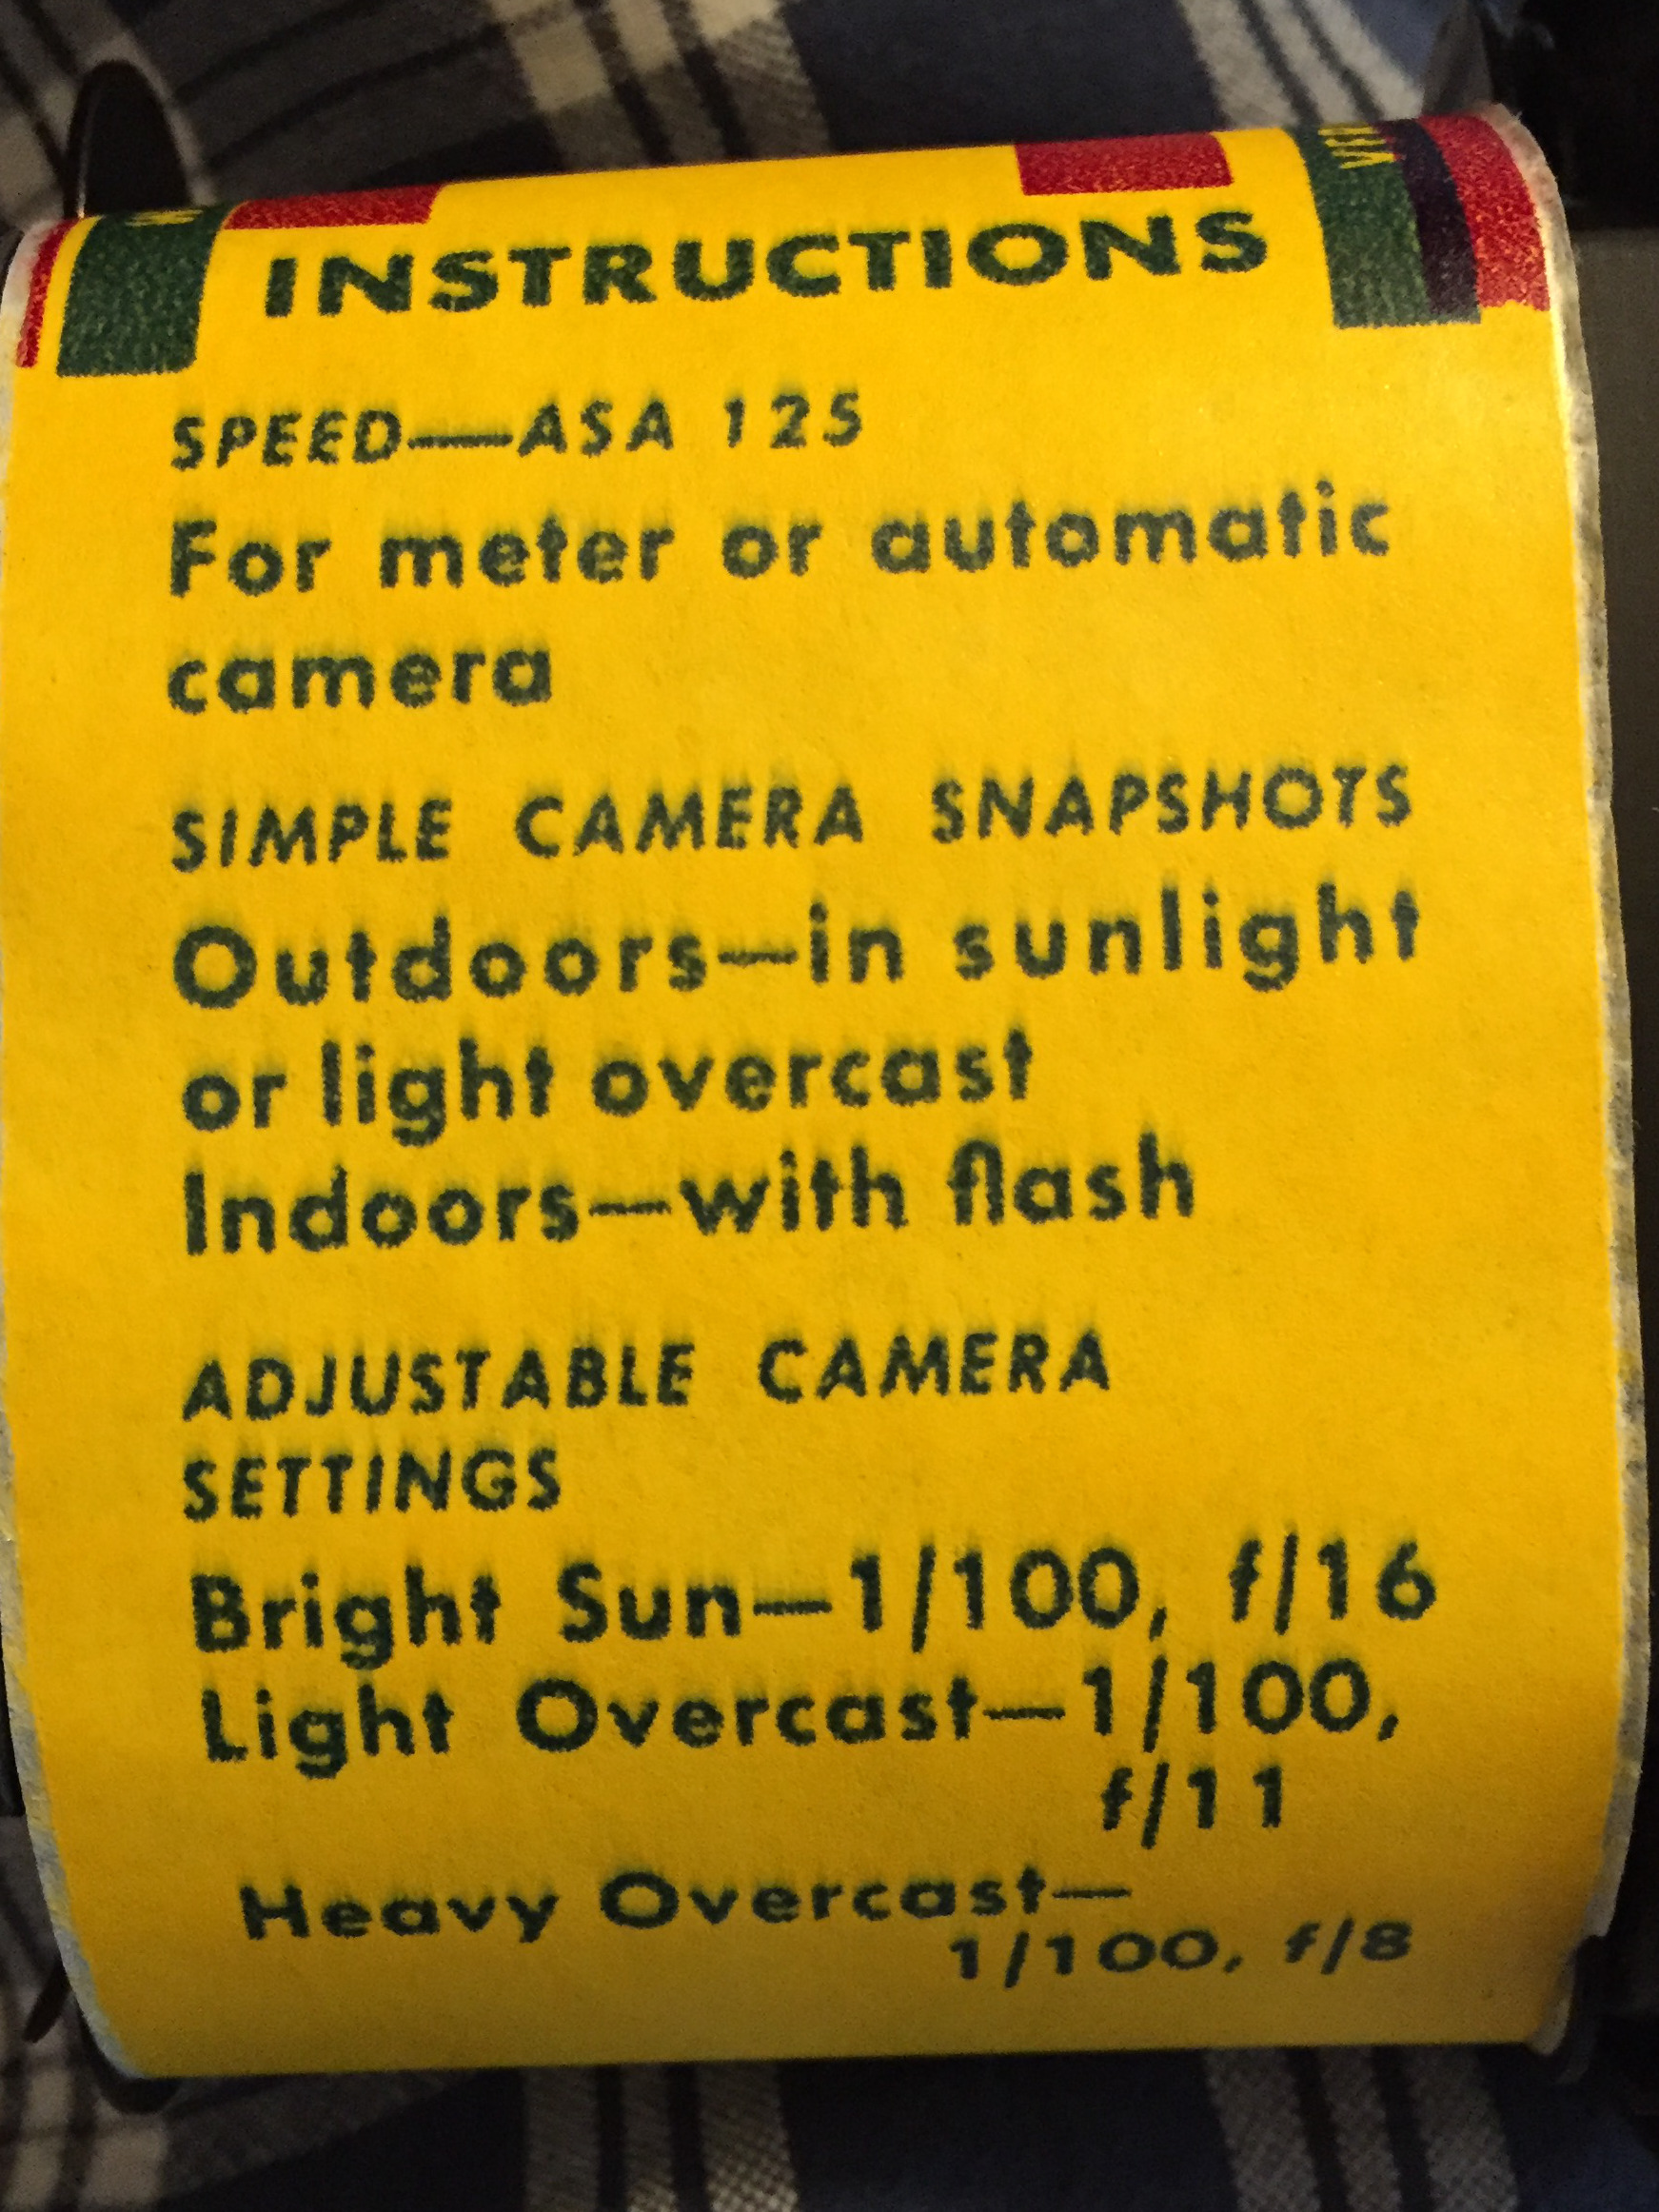 Exposure instructions right on the backing paper